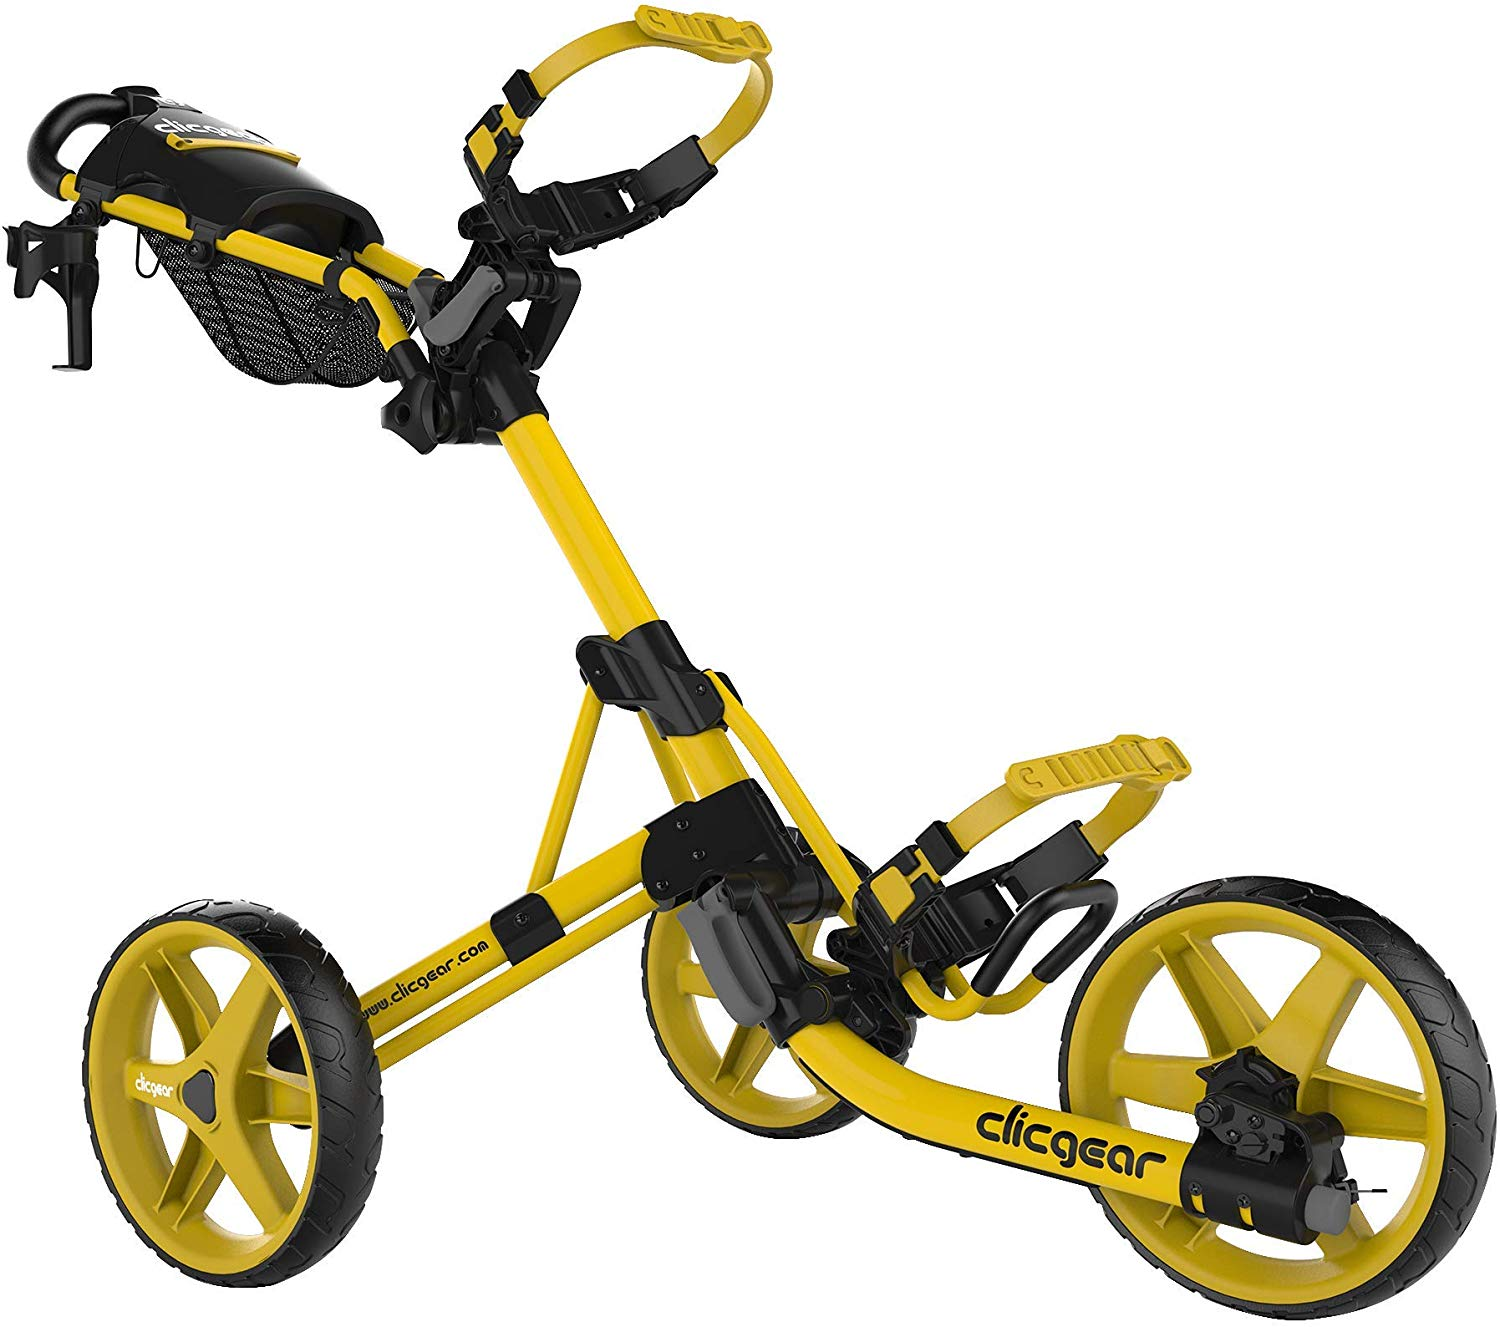 Clicgear 4.0 Golf Push Cart Review